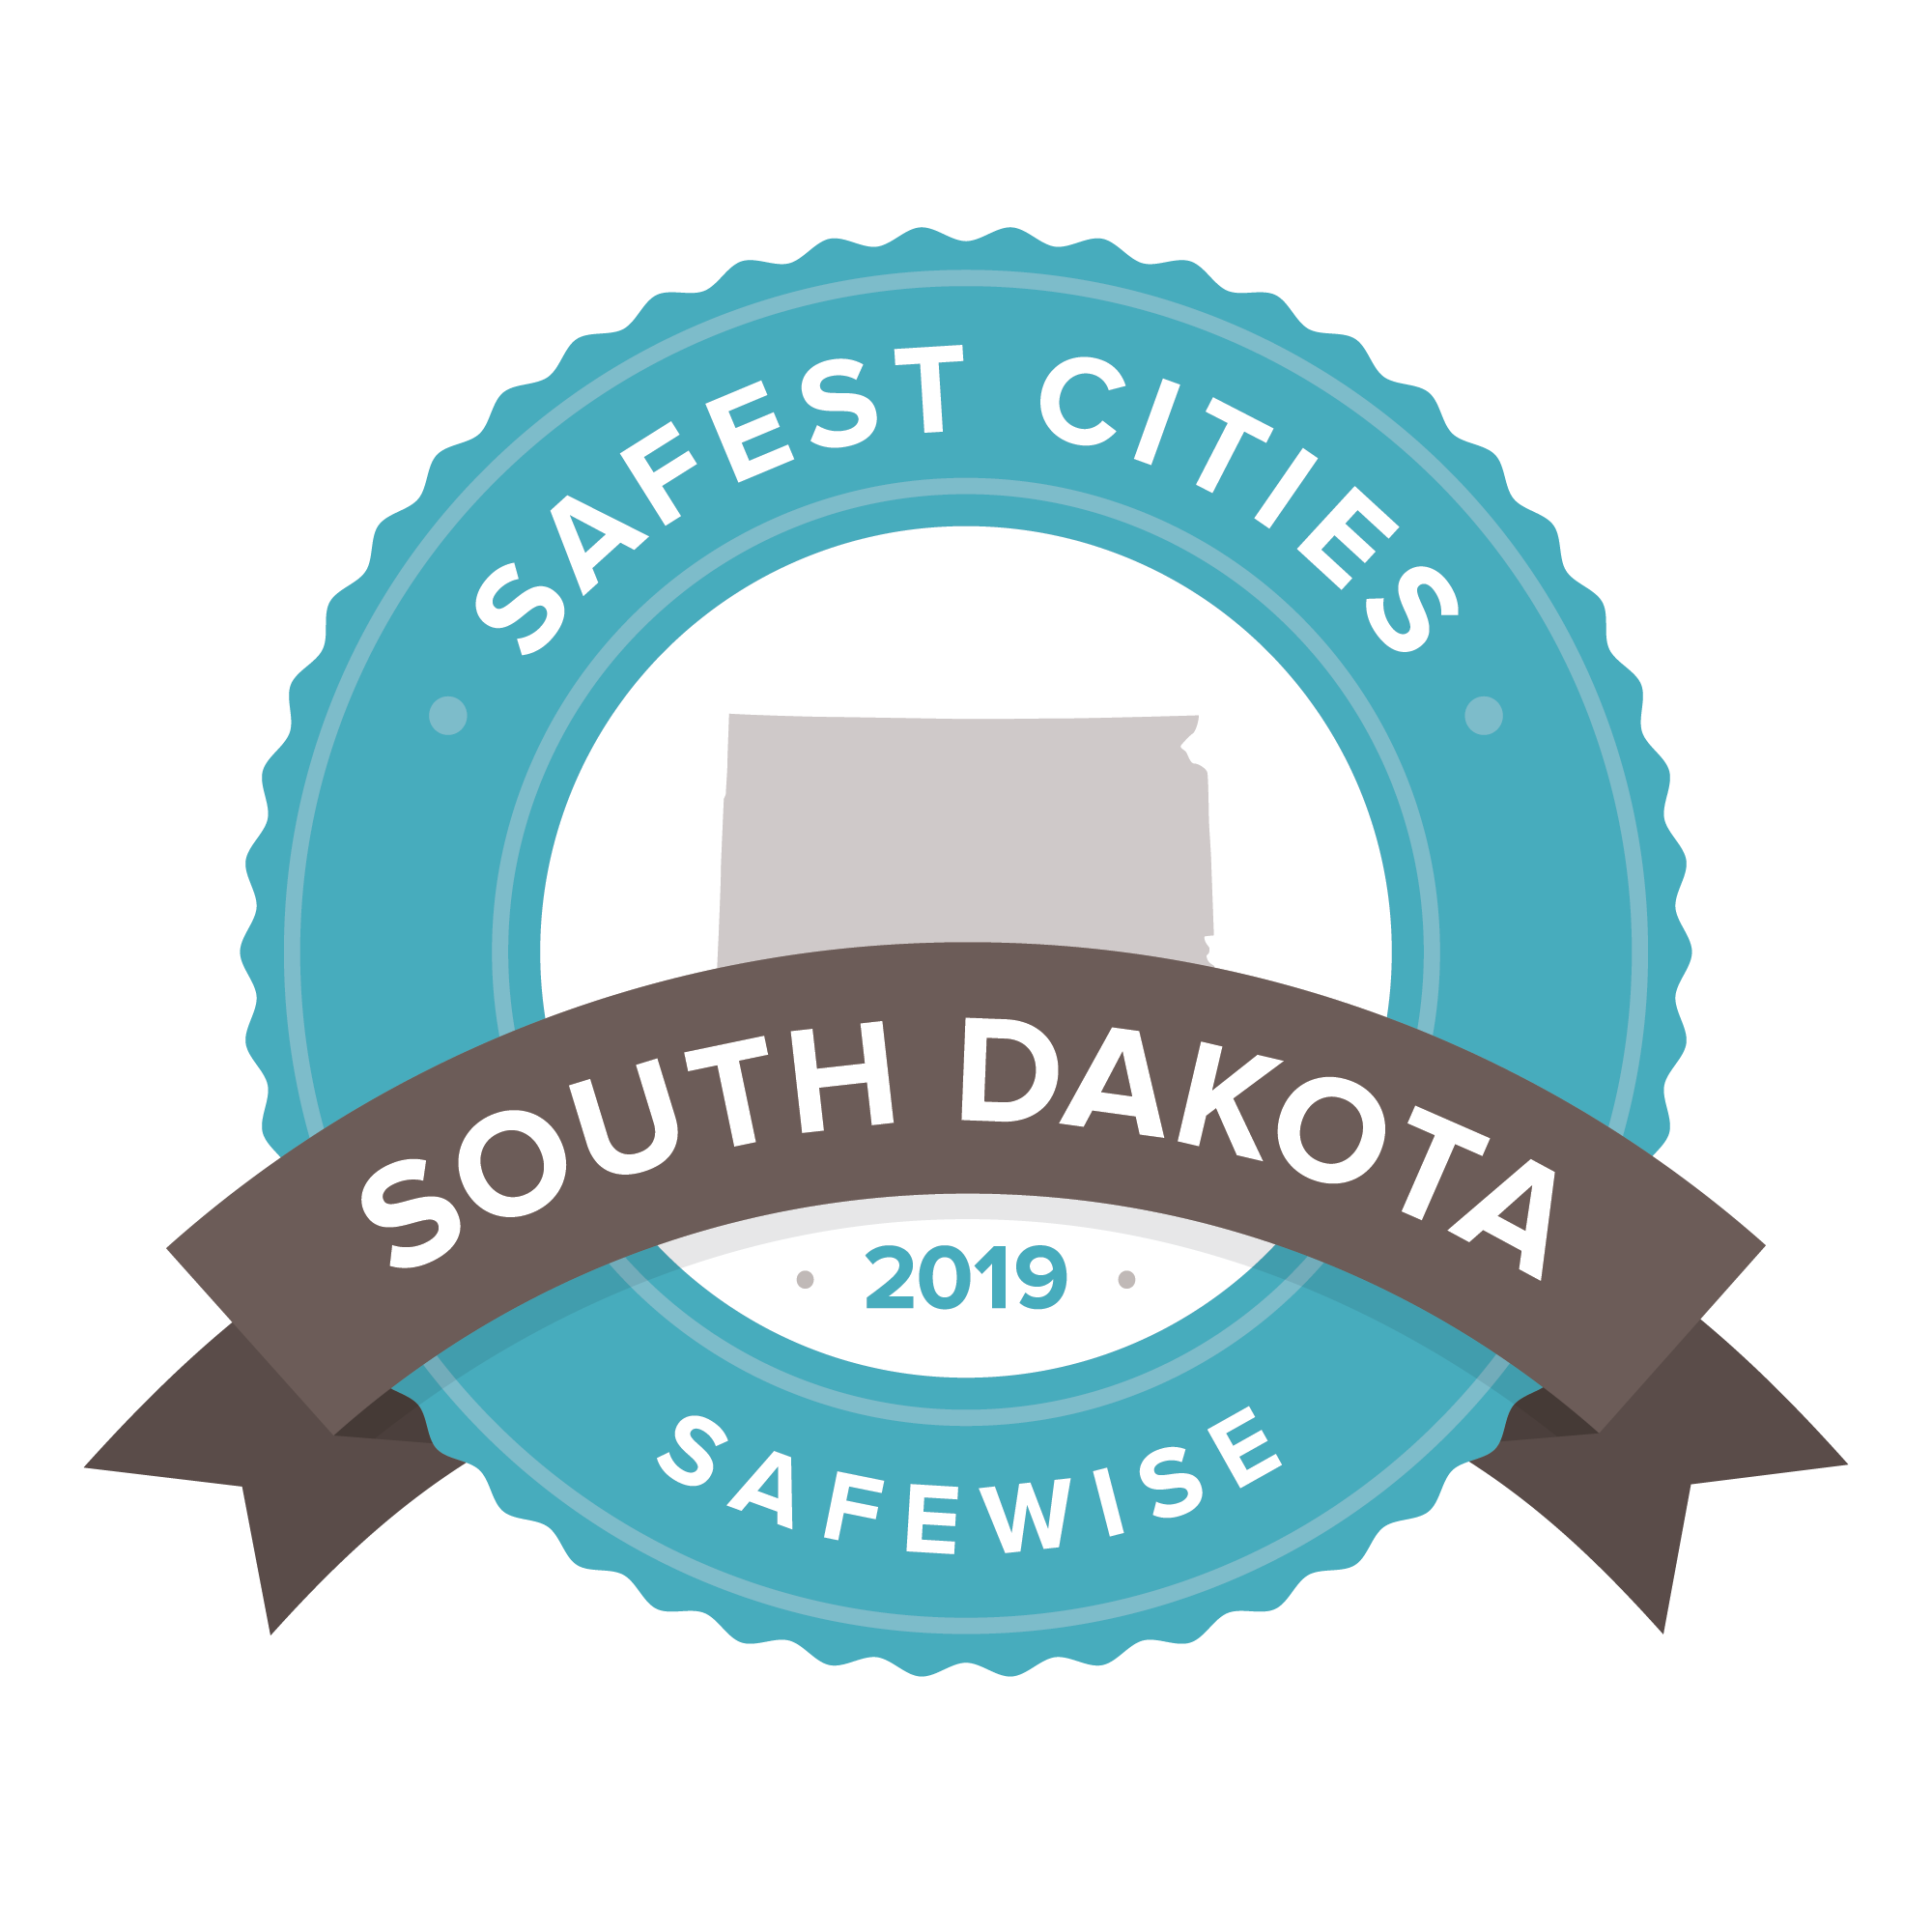 The State of Safety in South Dakota